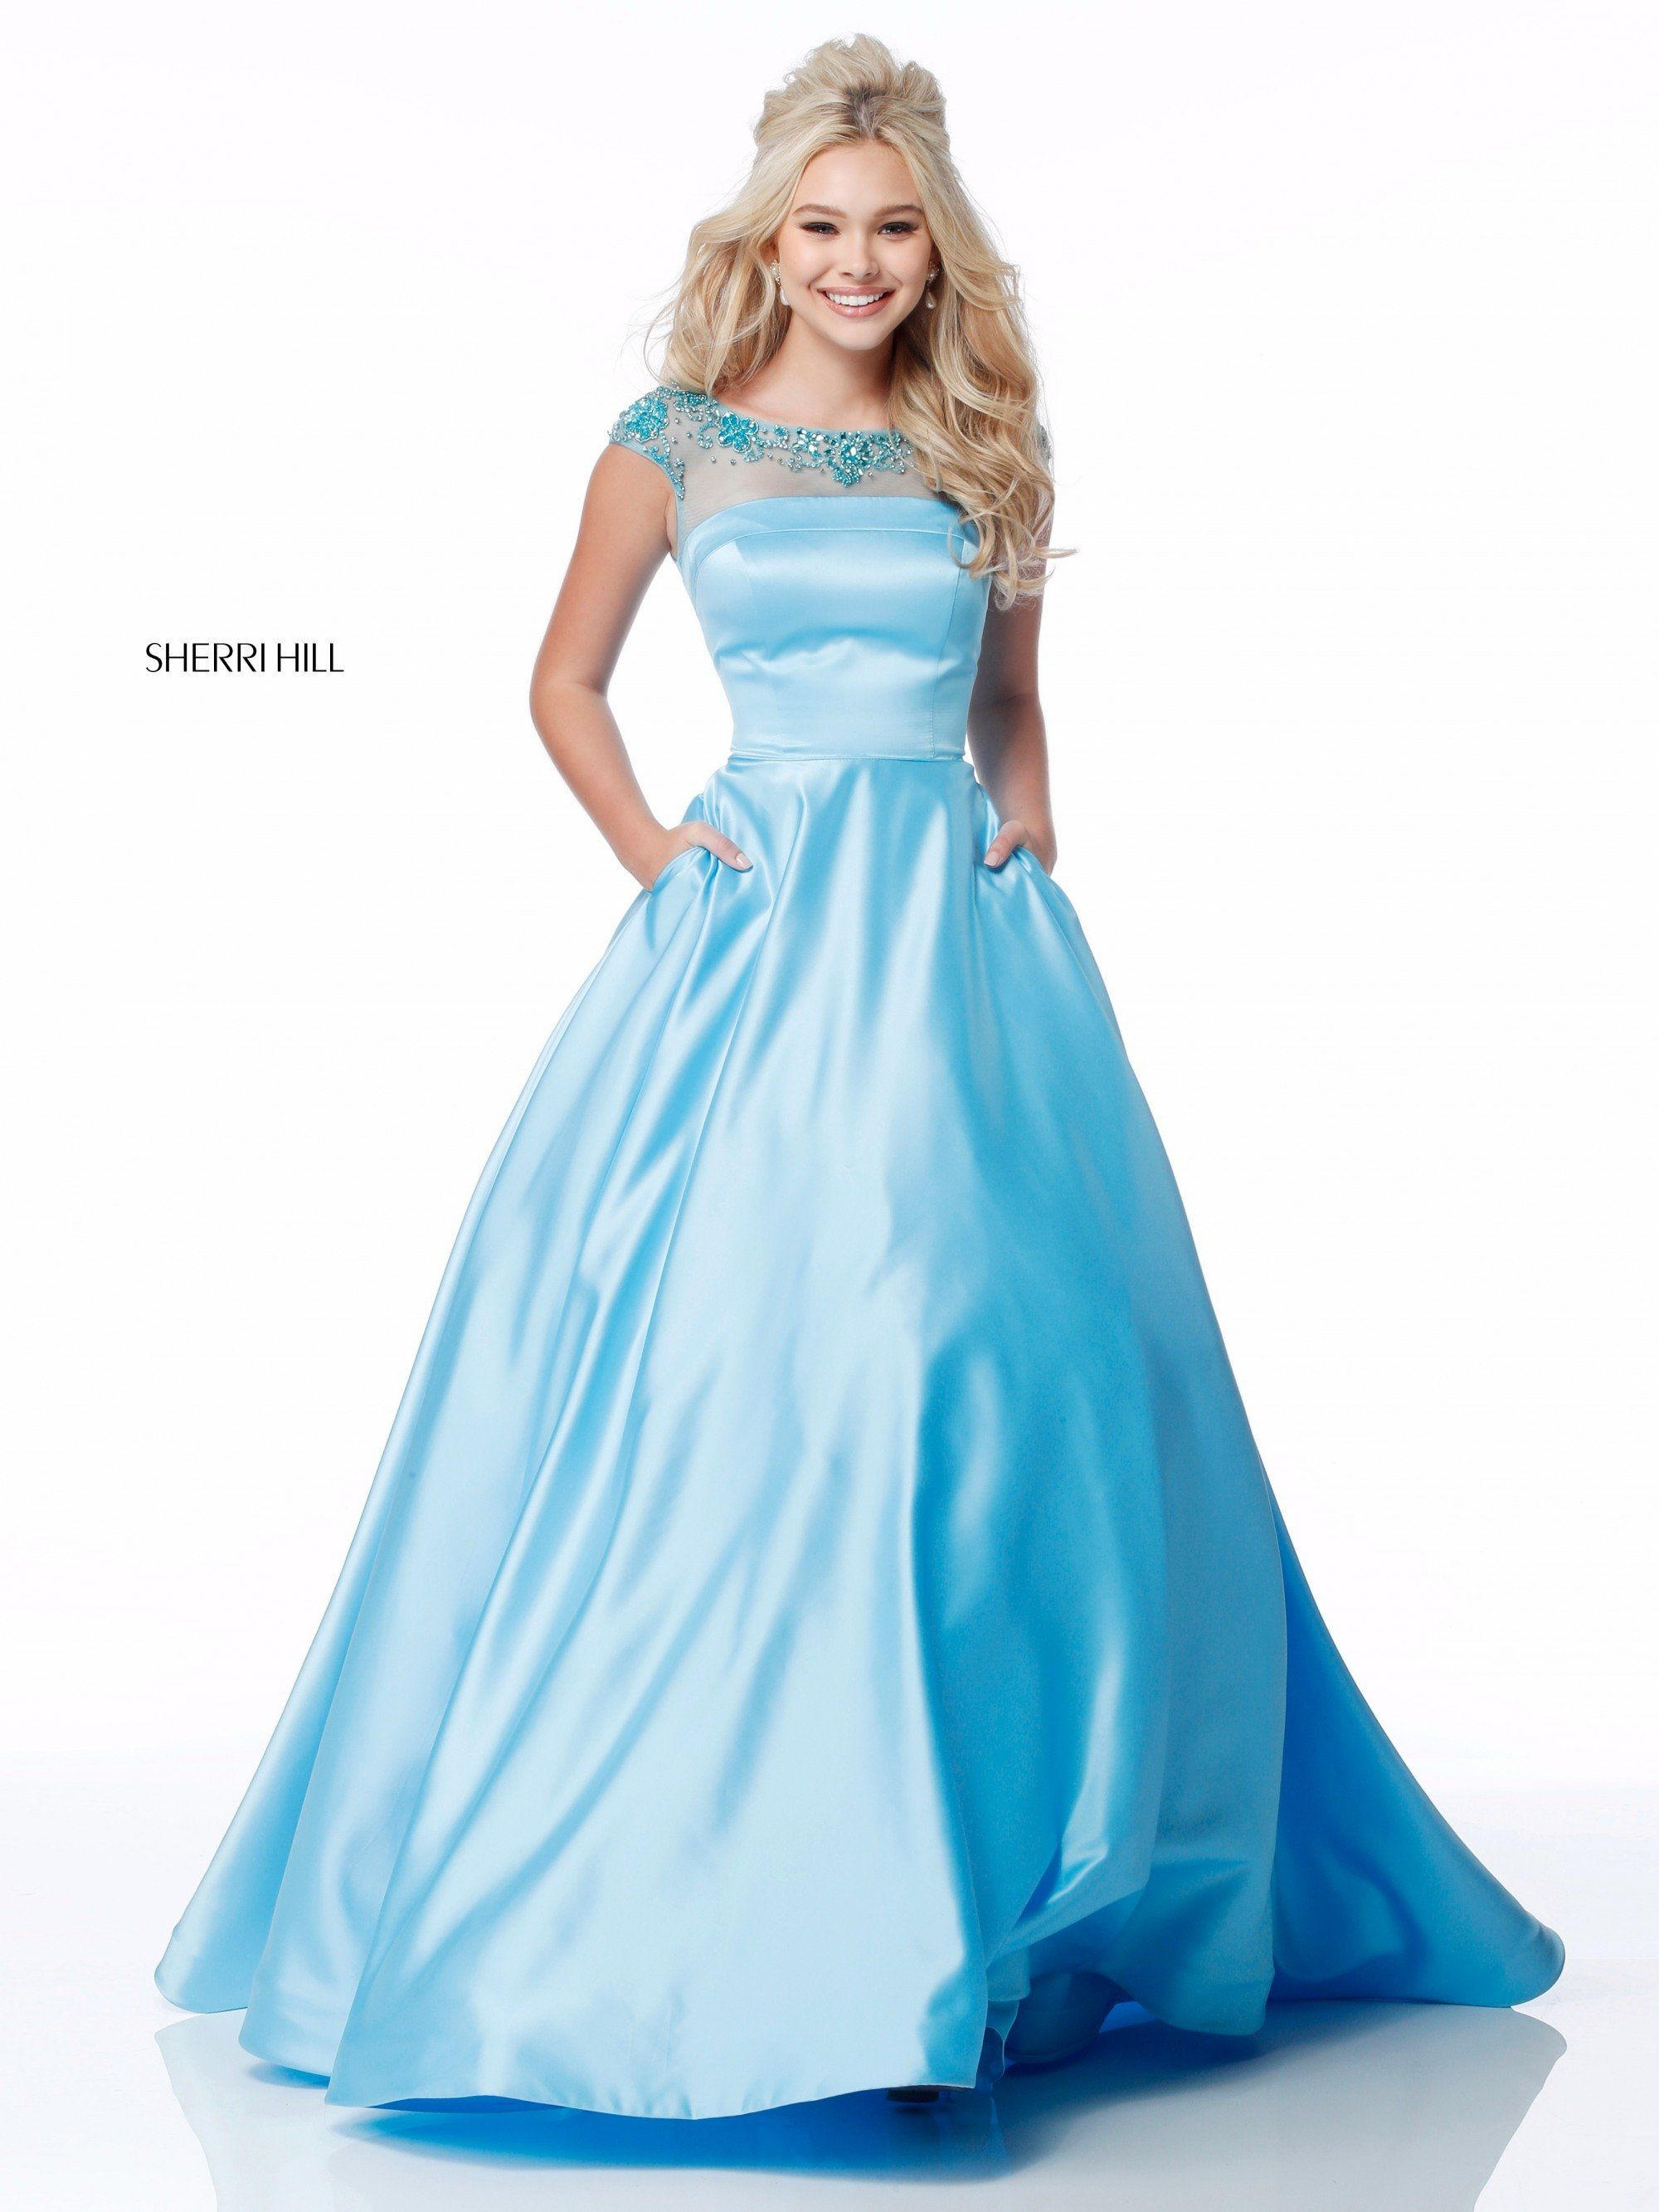 Sherri hill drop ships and products